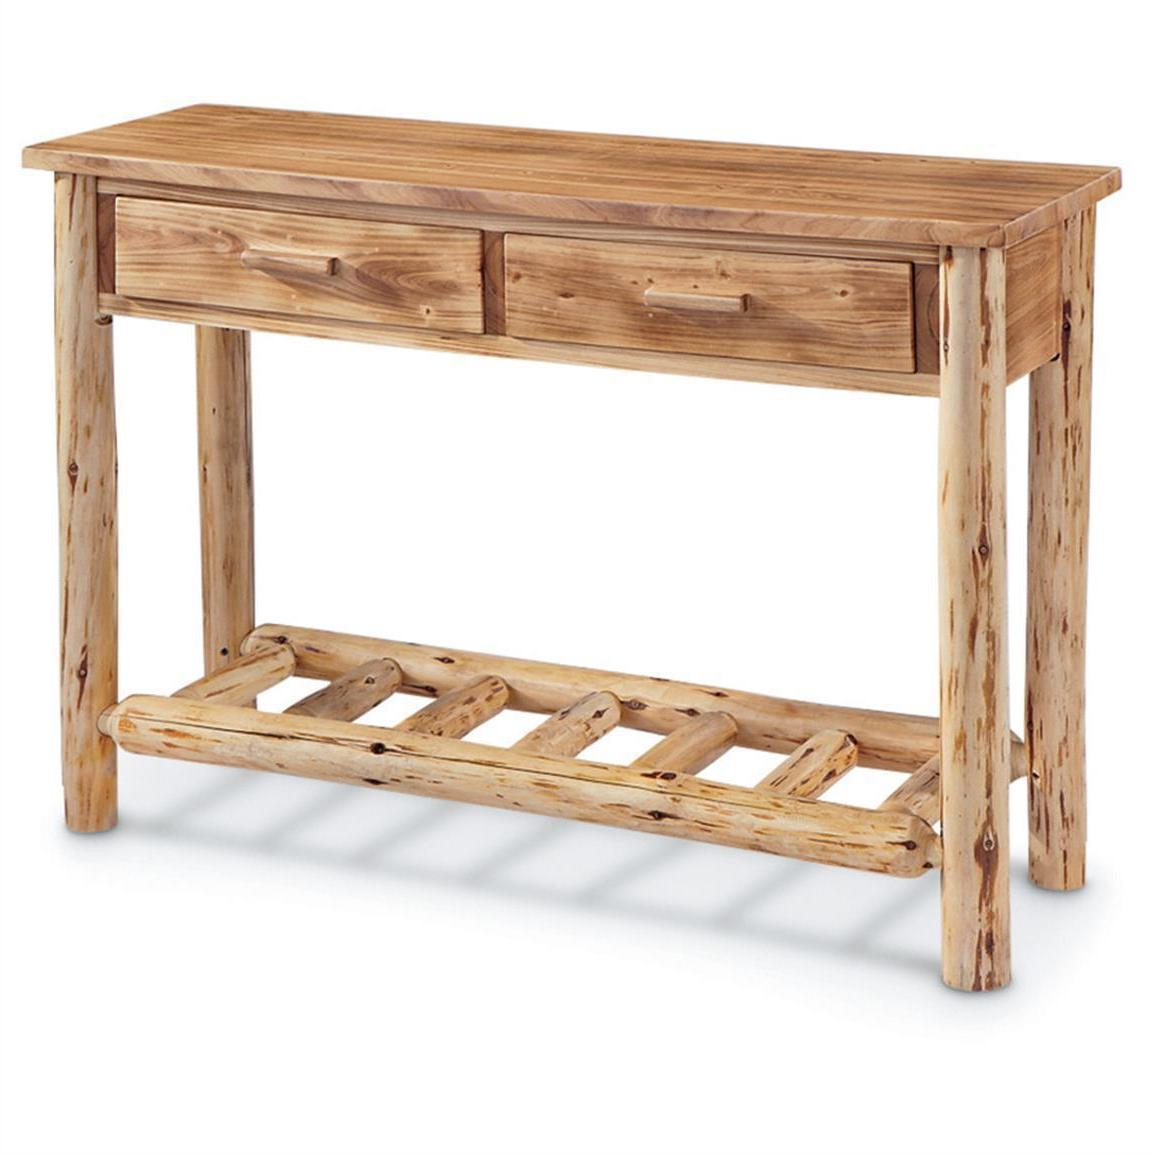 Rustic Pine Log Sofa Console Table Premium Lacquer Finish So